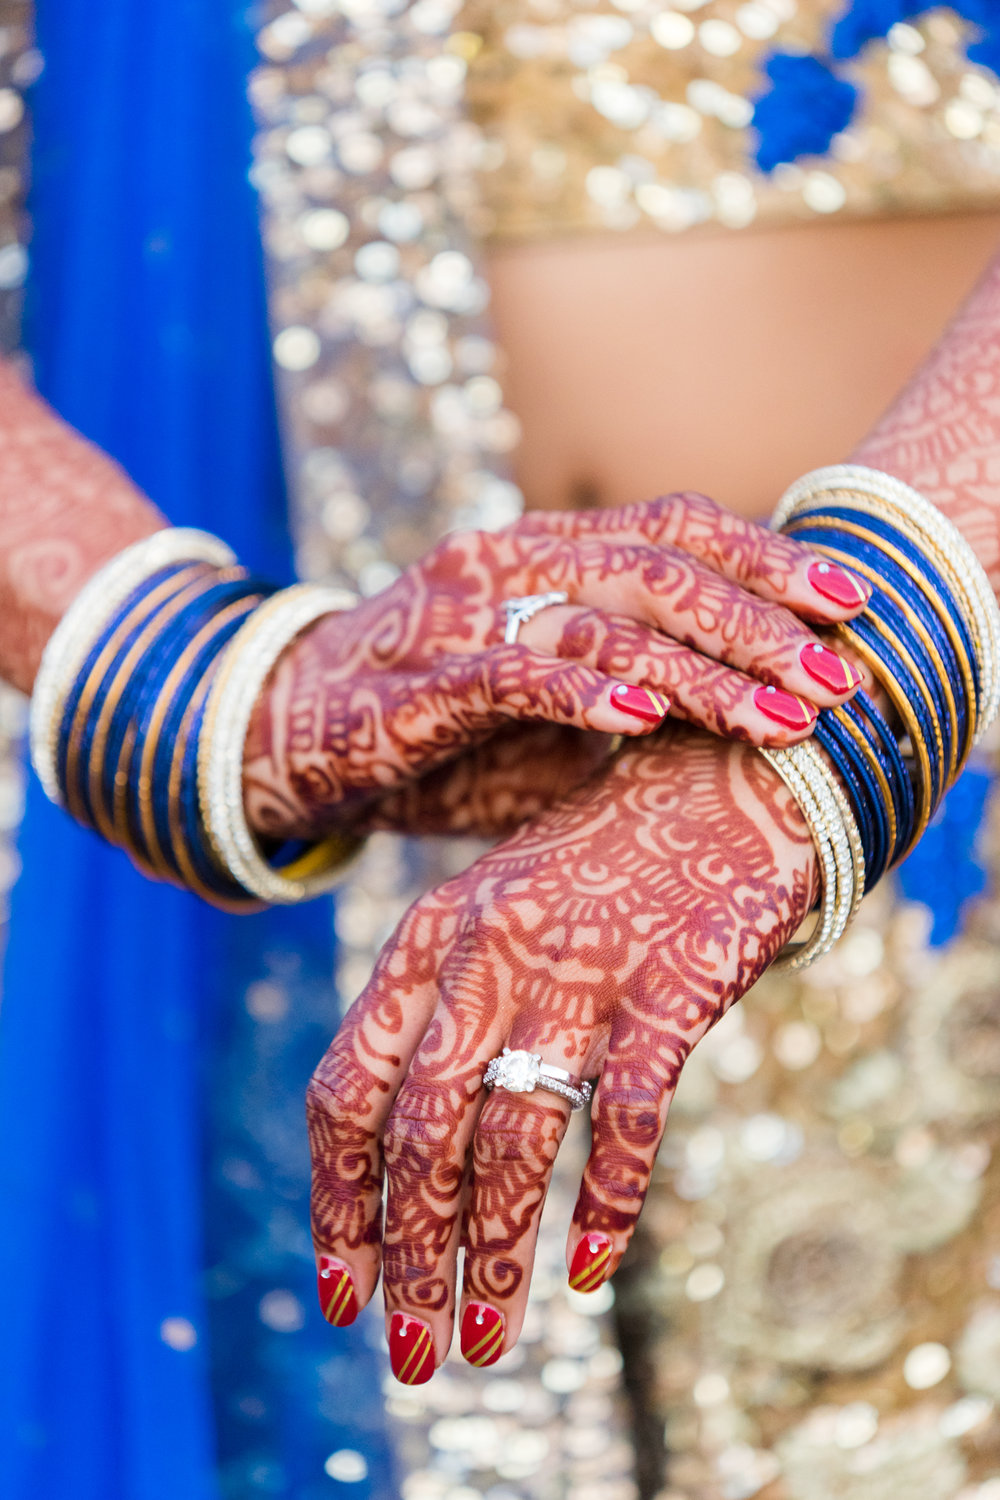 ReeyaAman-Wedding-Photography-www.MnMfoto.comMnMfoto-Krishna-Sajan-1458.jpg